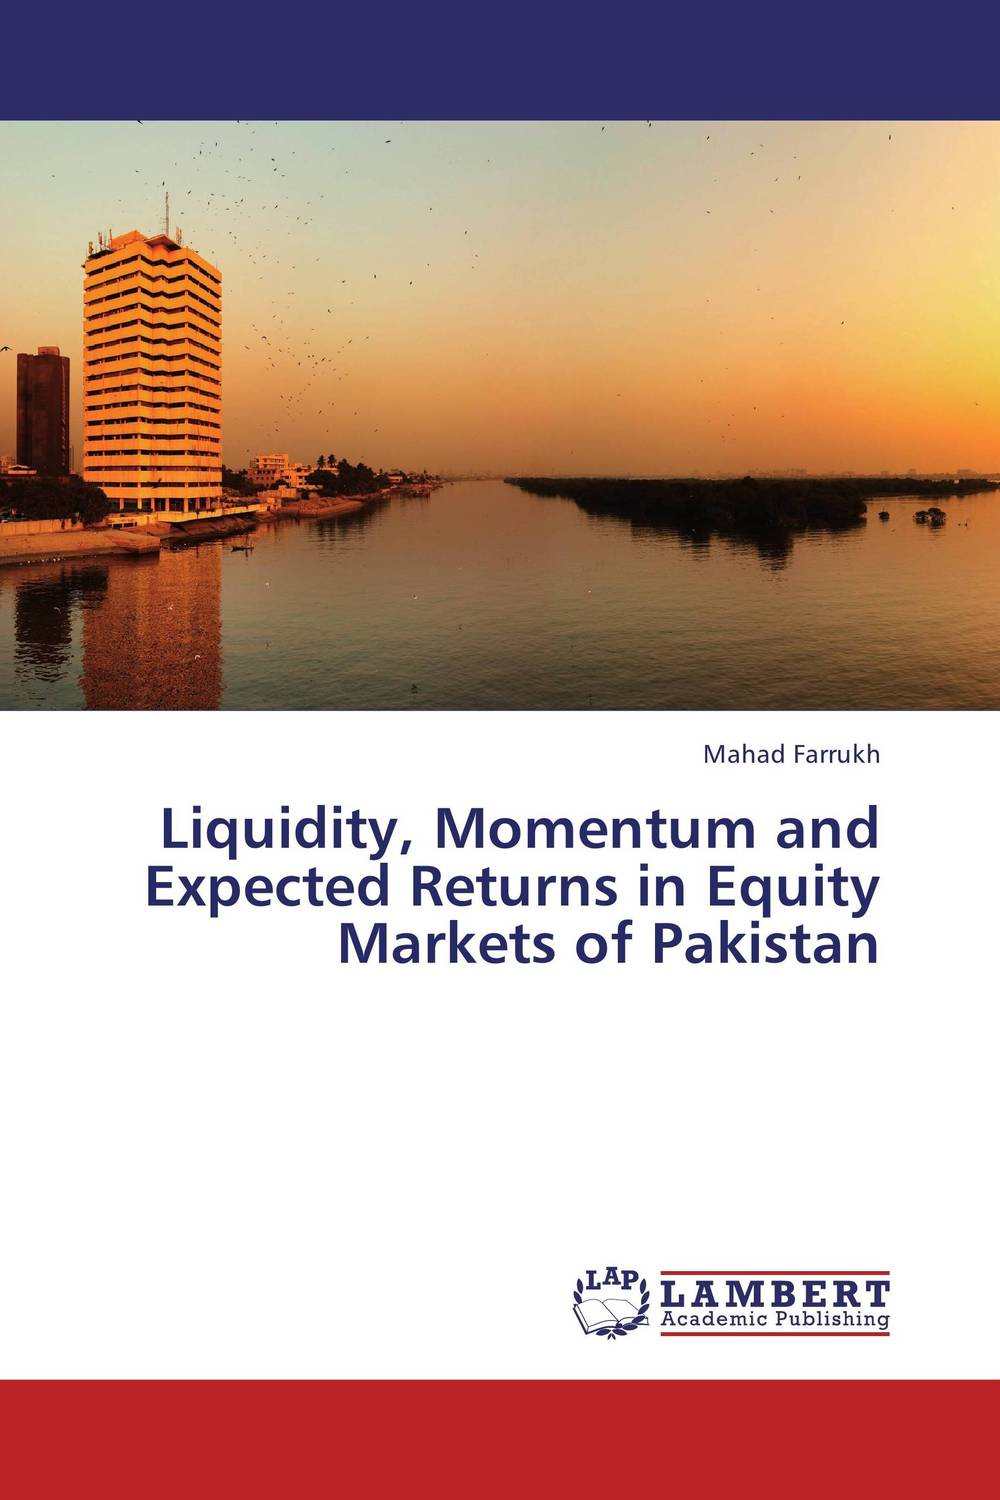 Liquidity, Momentum and Expected Returns in Equity Markets of Pakistan koning jan de high returns from low risk